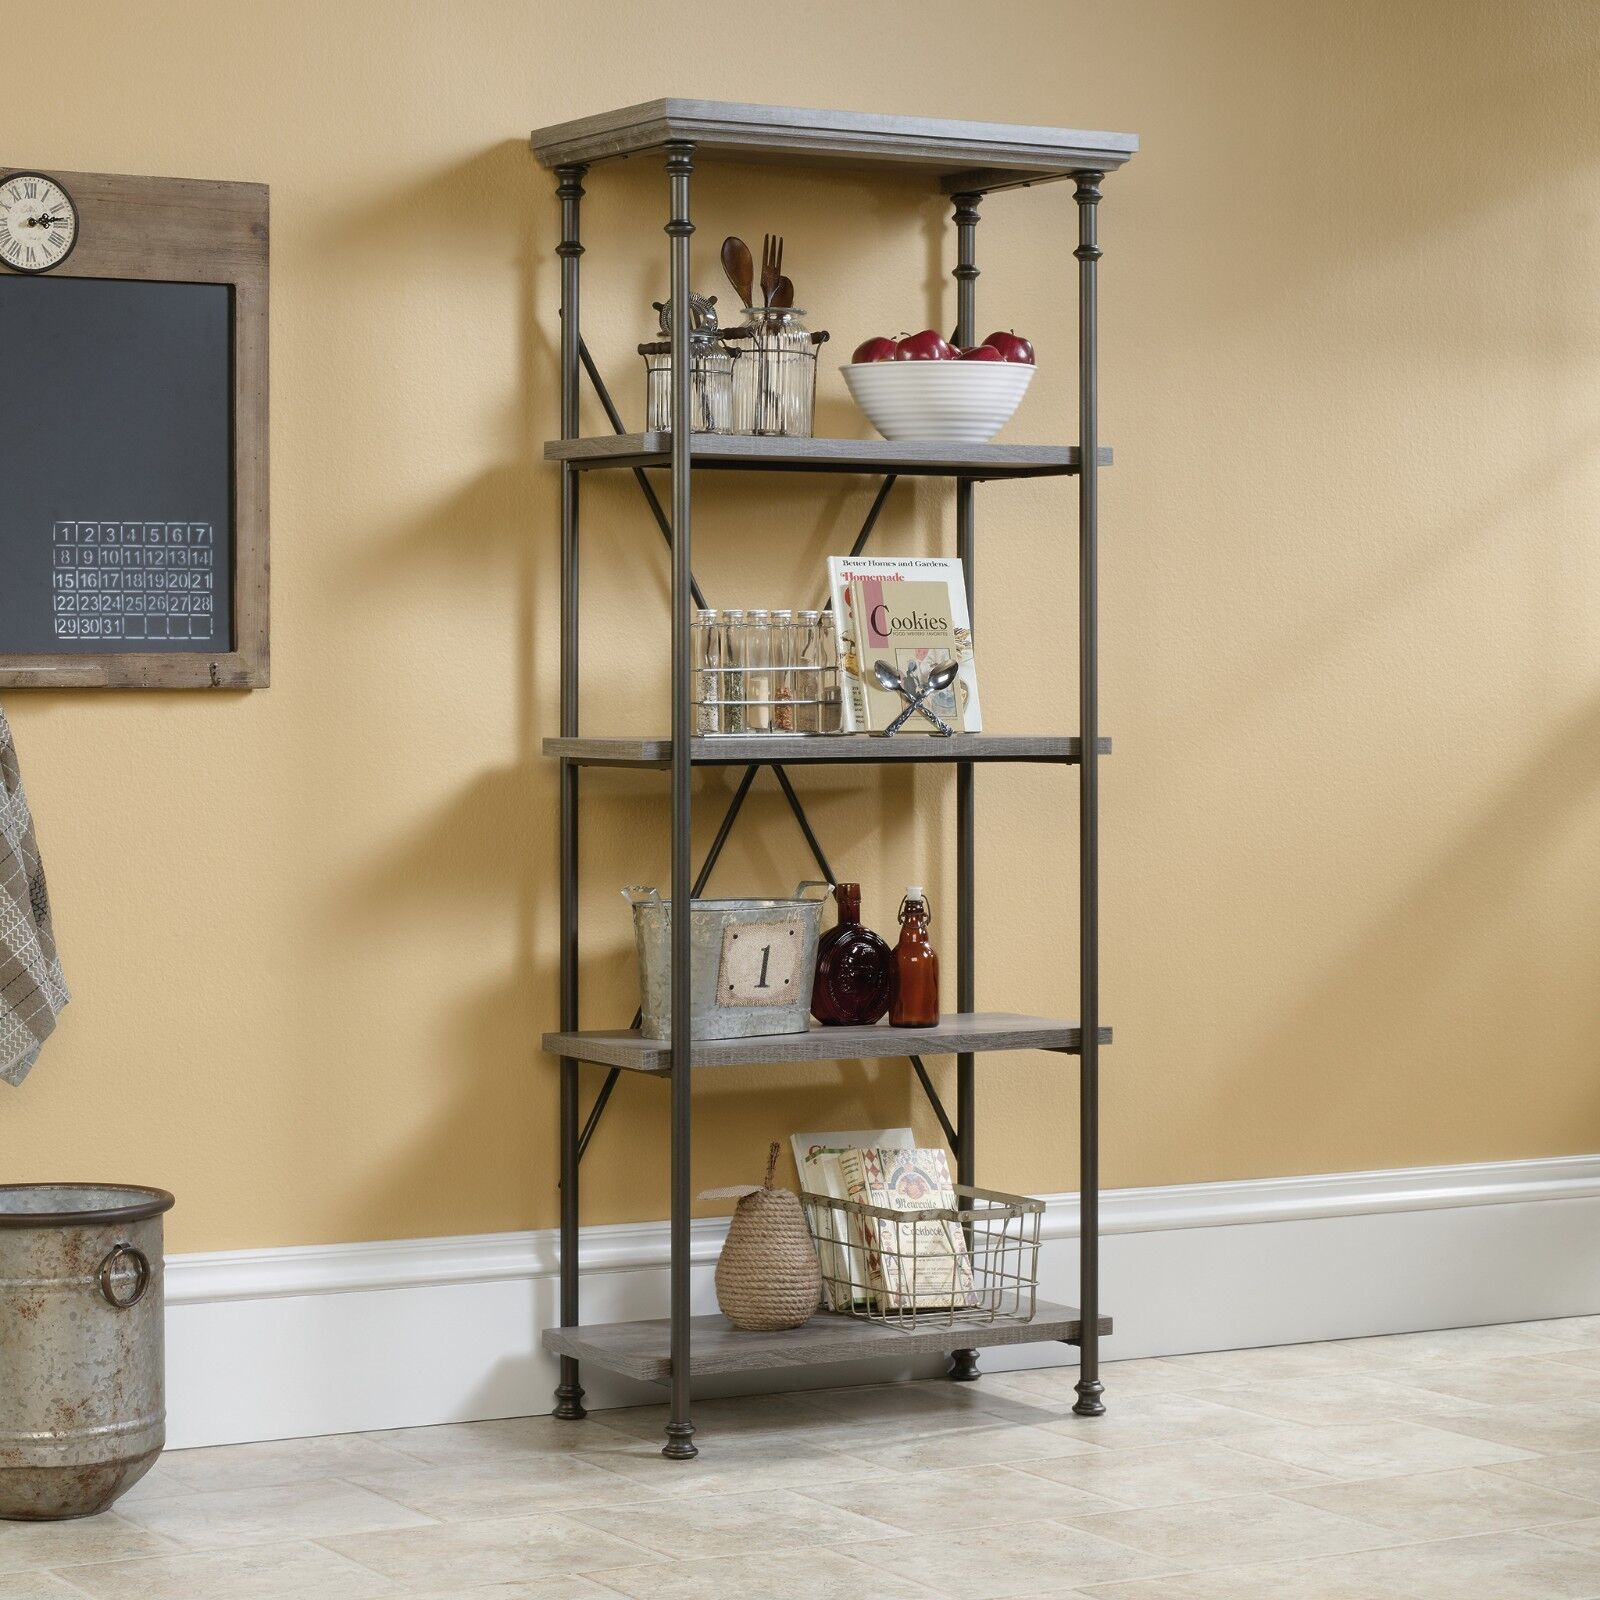 Forge industrial style tall bookcase shelving metal frame in dark oak effect